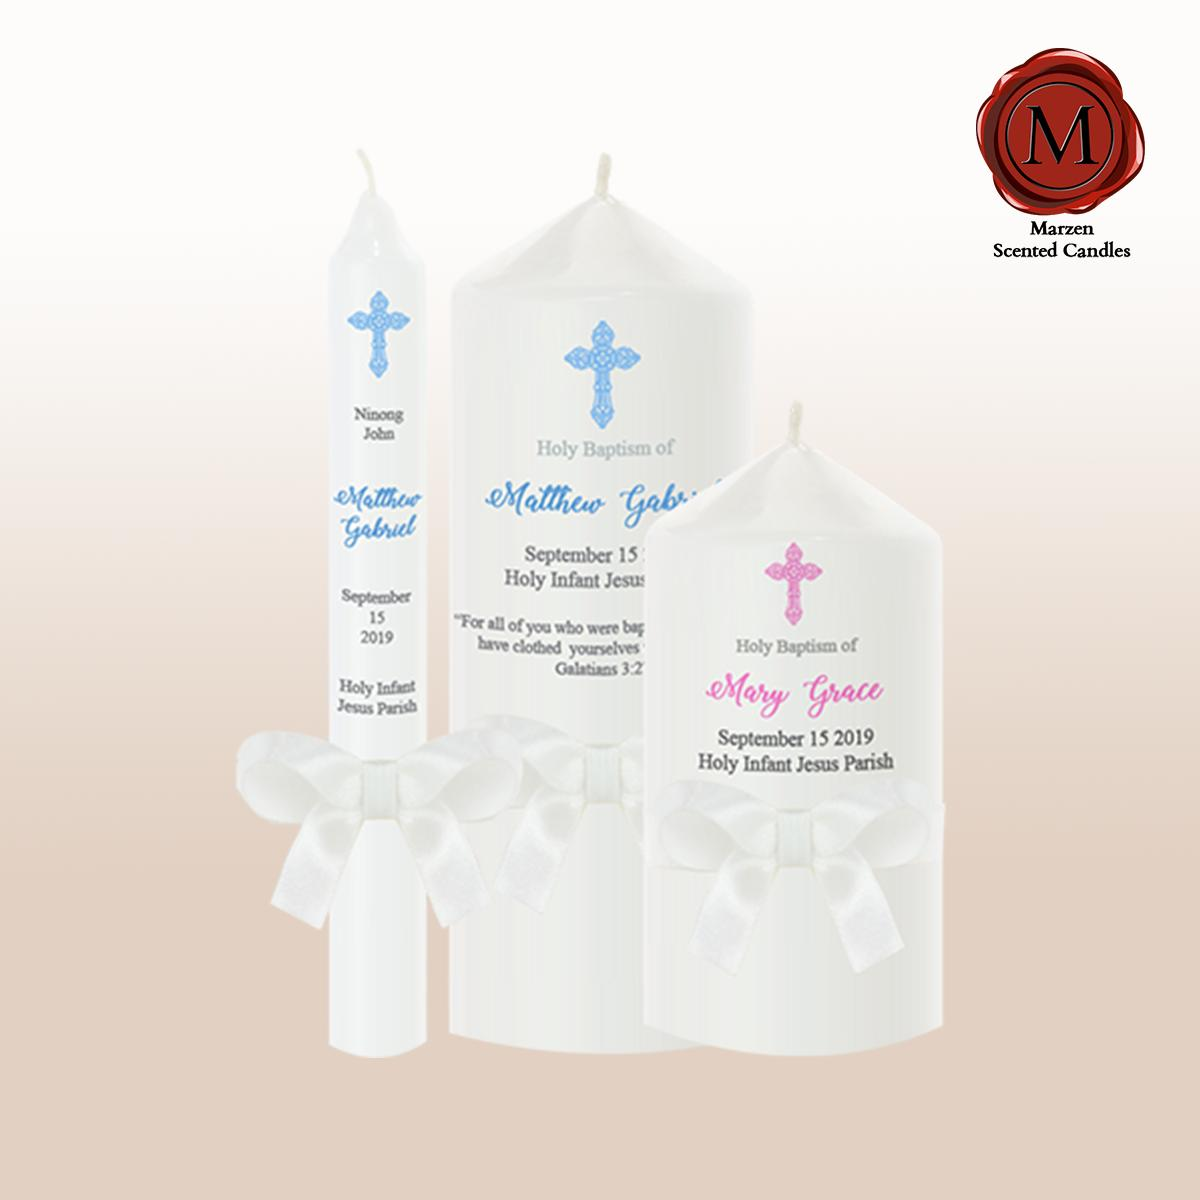 Marzen Baptismal Candles (godparents & Parents) By Marzen Scented Candles.